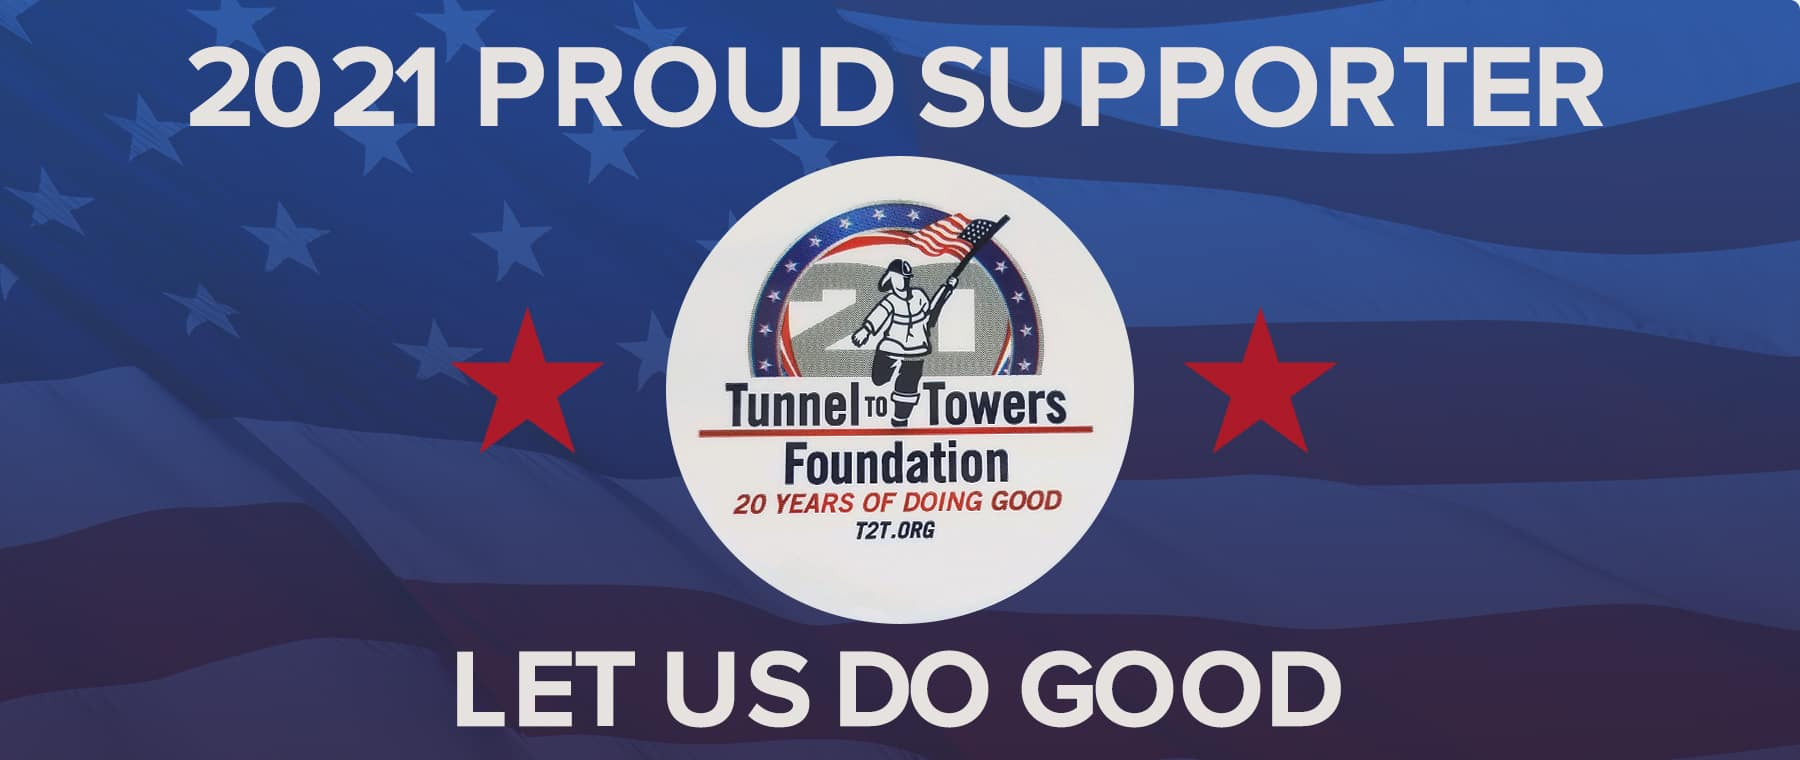 2021 Proud Supporter | Let Us Do Good, 2021 Proud Supporter | Let Us Do Good